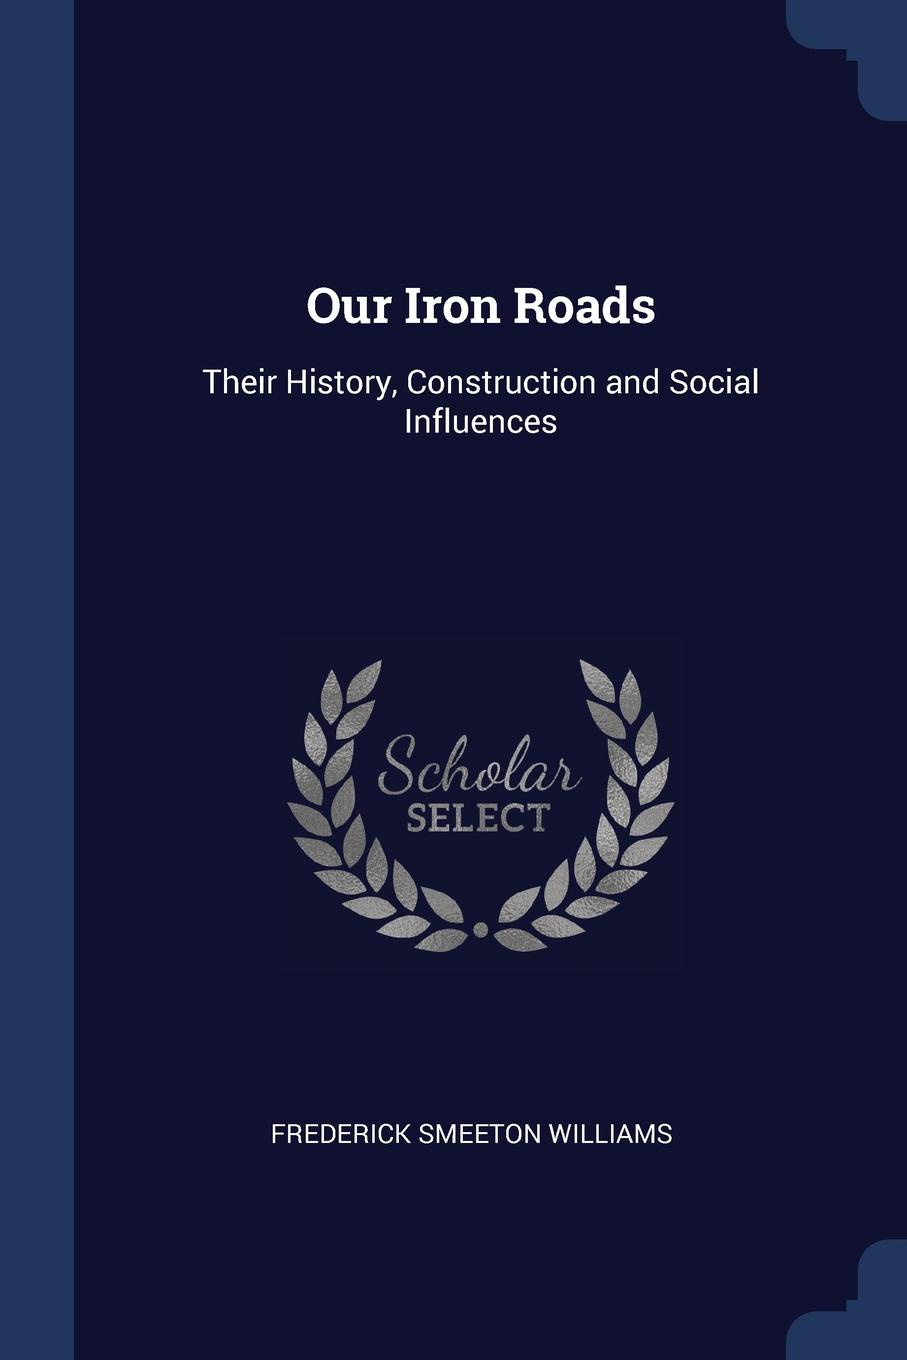 Frederick Smeeton Williams Our Iron Roads. Their History, Construction and Social Influences